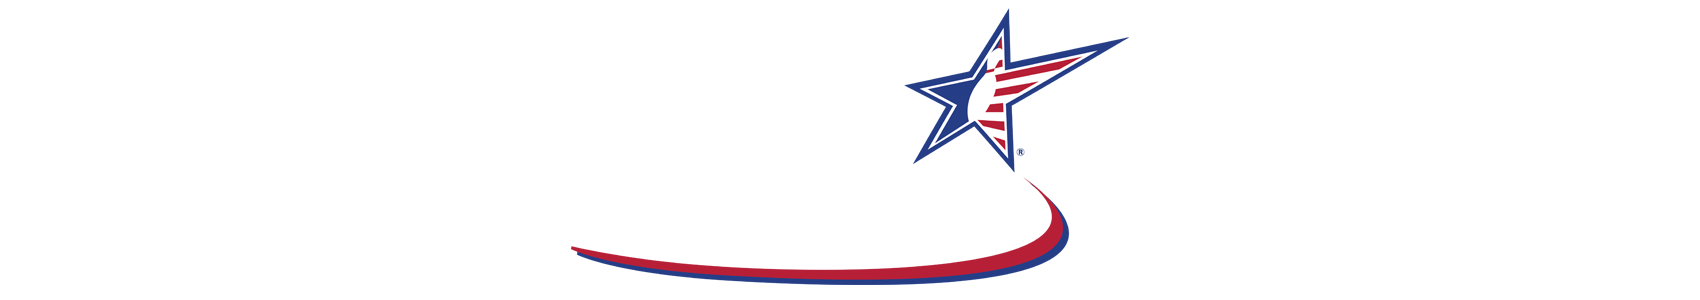 Bowling.com Youth Open Championships